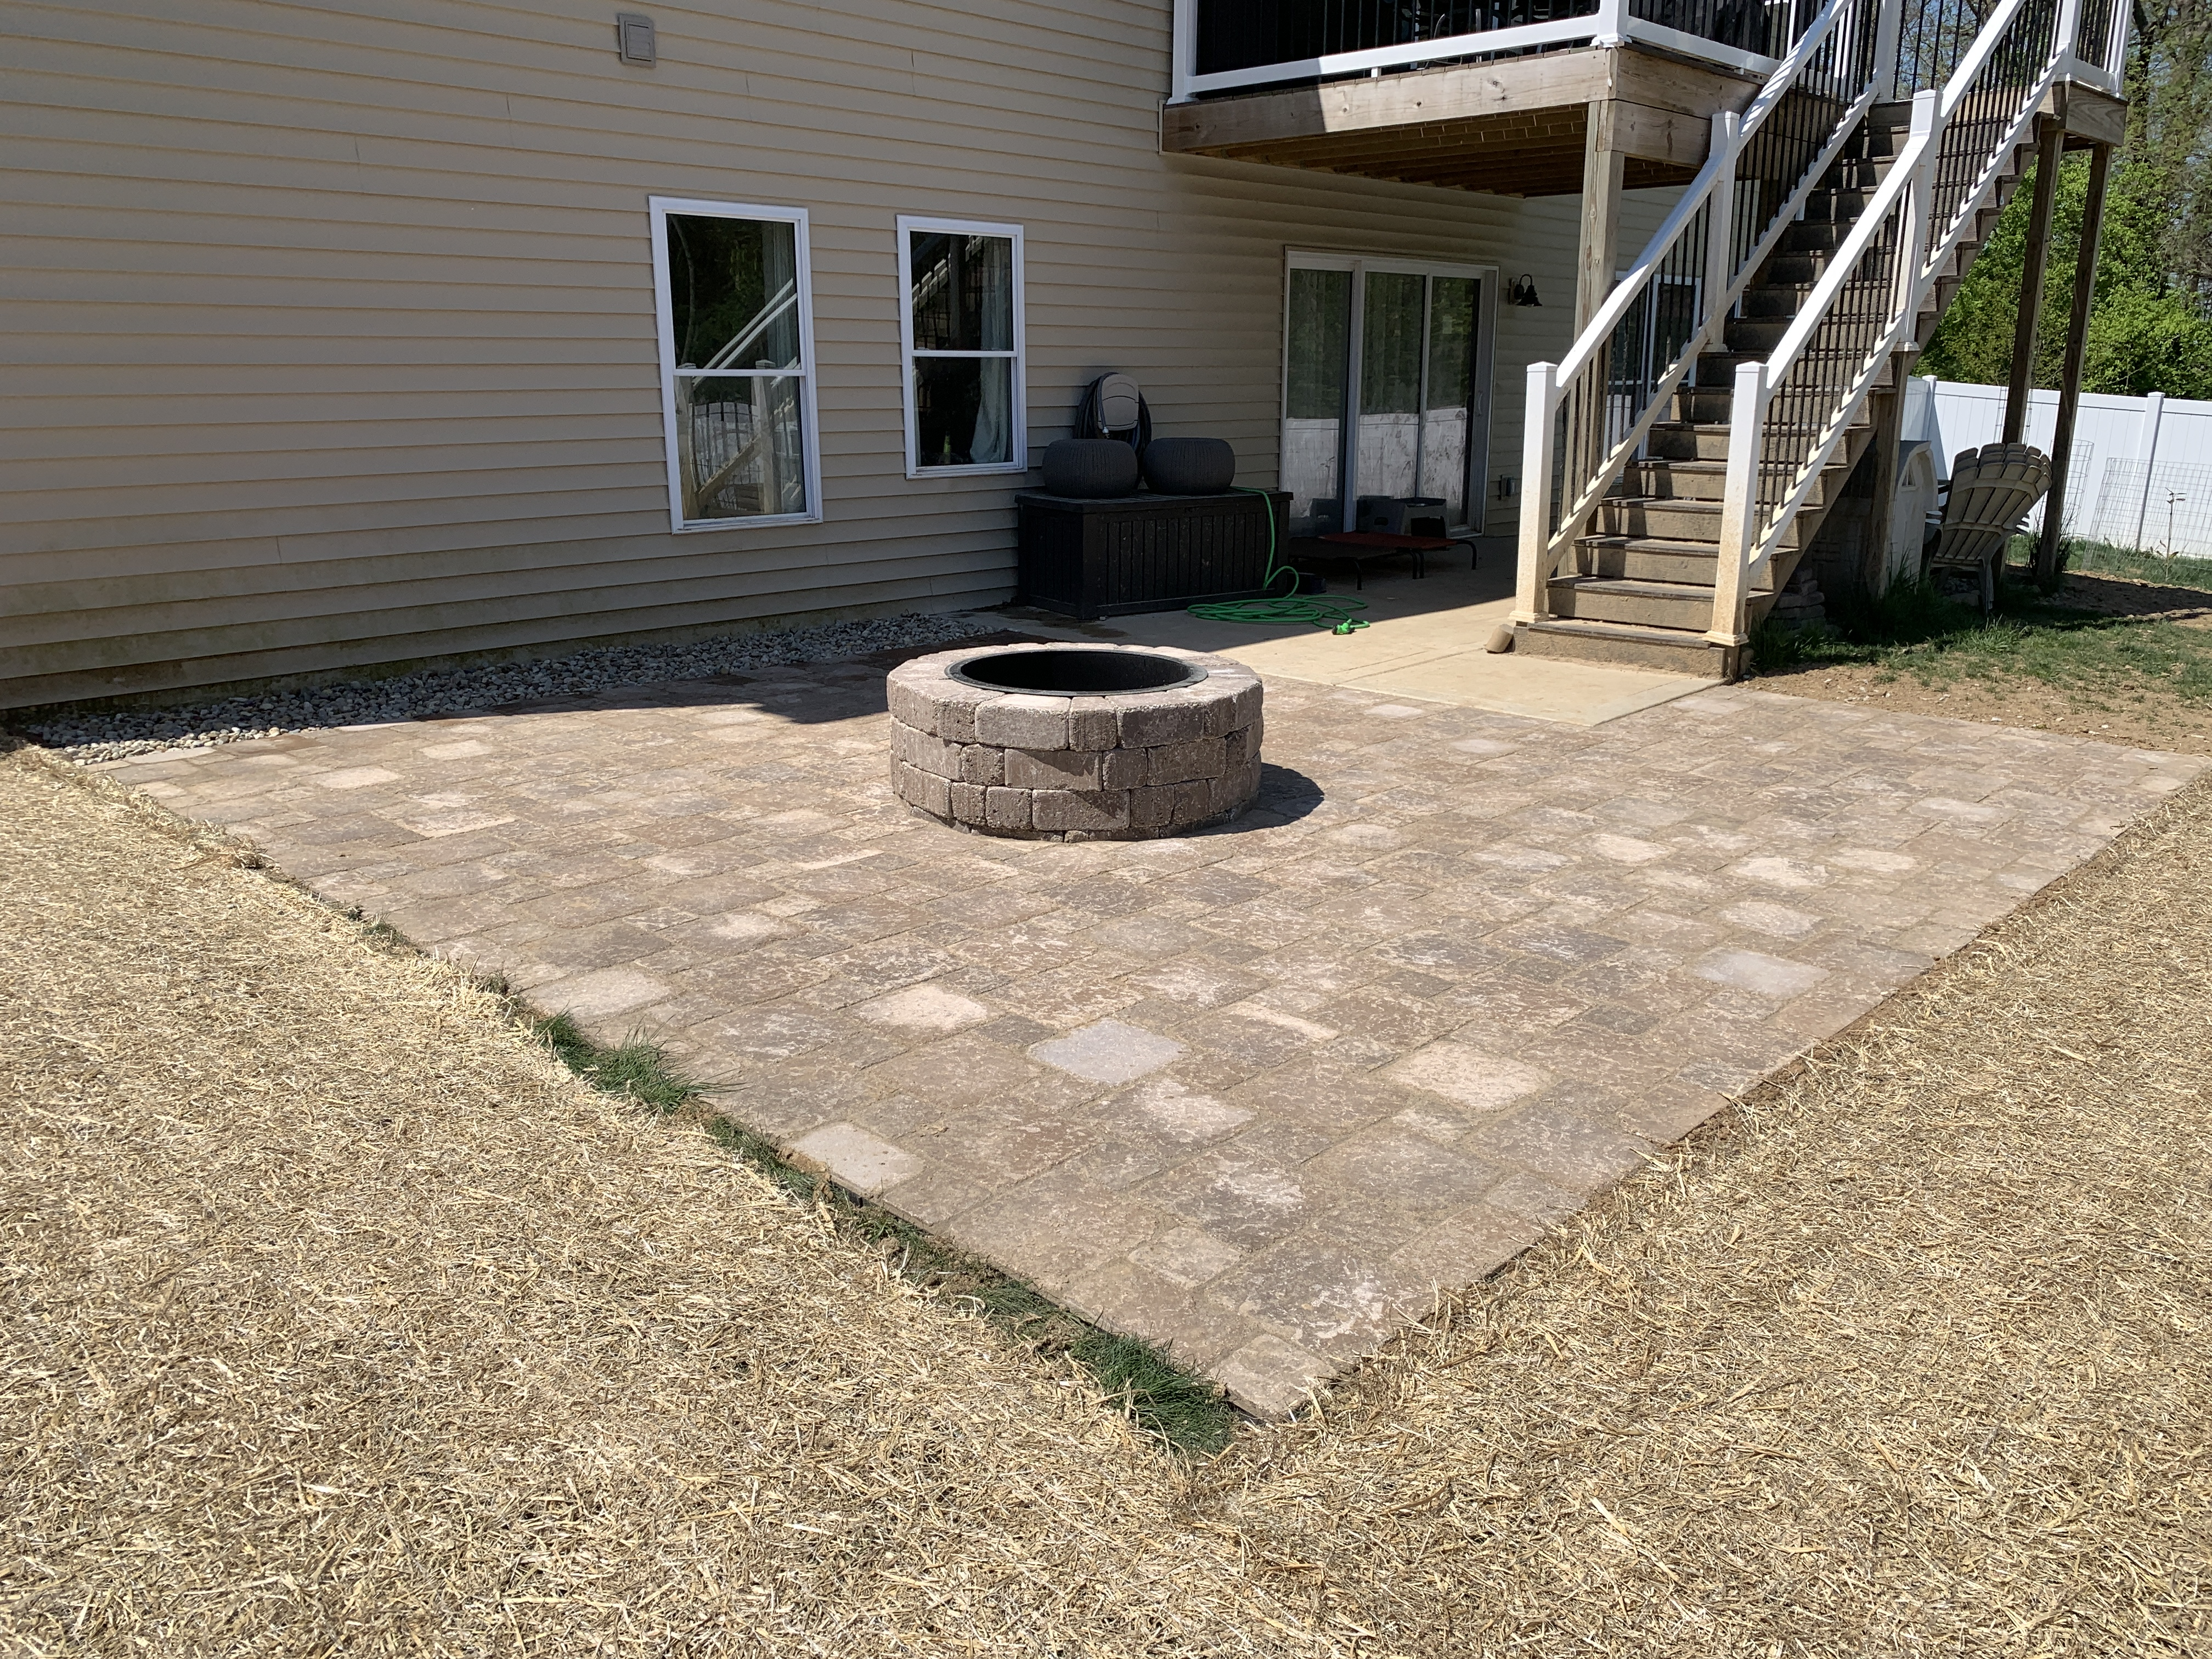 Outdoor Living - Romanstone Paver Patio Installation with Madera Fire Pit In Columbia, IL